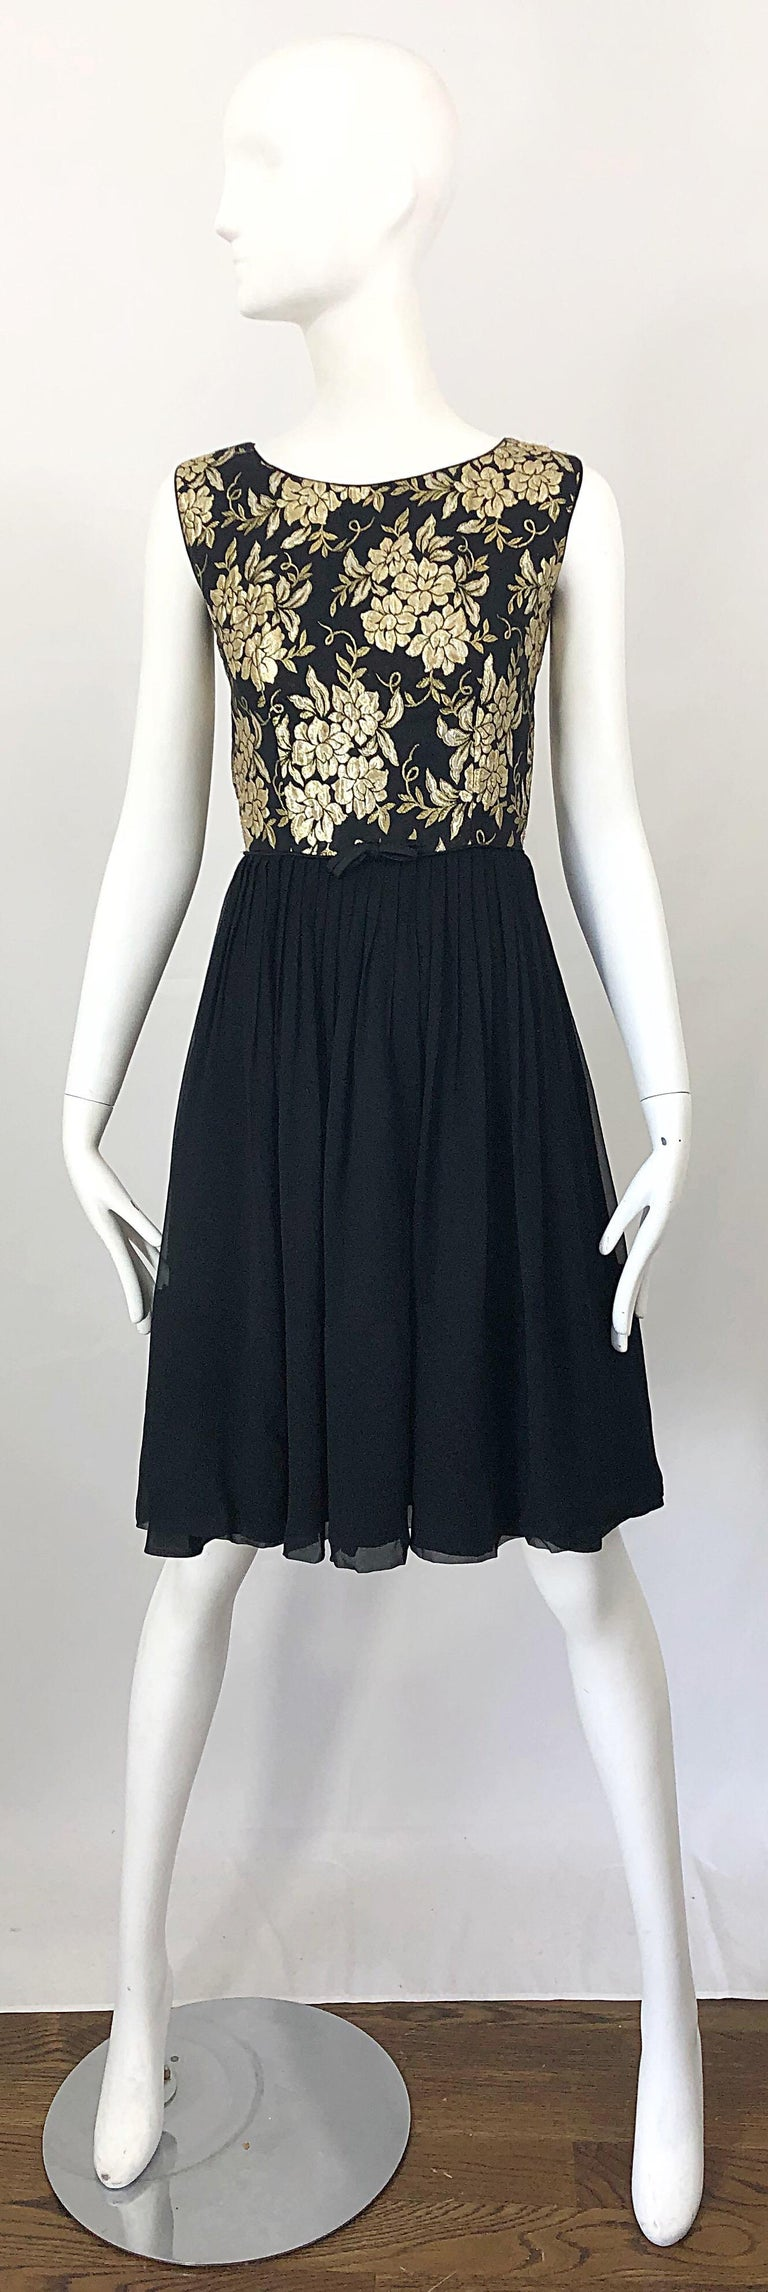 Beautiful 1950s demi couture gold and black silk brocade and chiffon cocktail dress! Features a tailored gold and black silk flower brocade bodice, with a forgiving black silk chiffon skirt. Full metal zipper up the back with hook-and-eye closure.